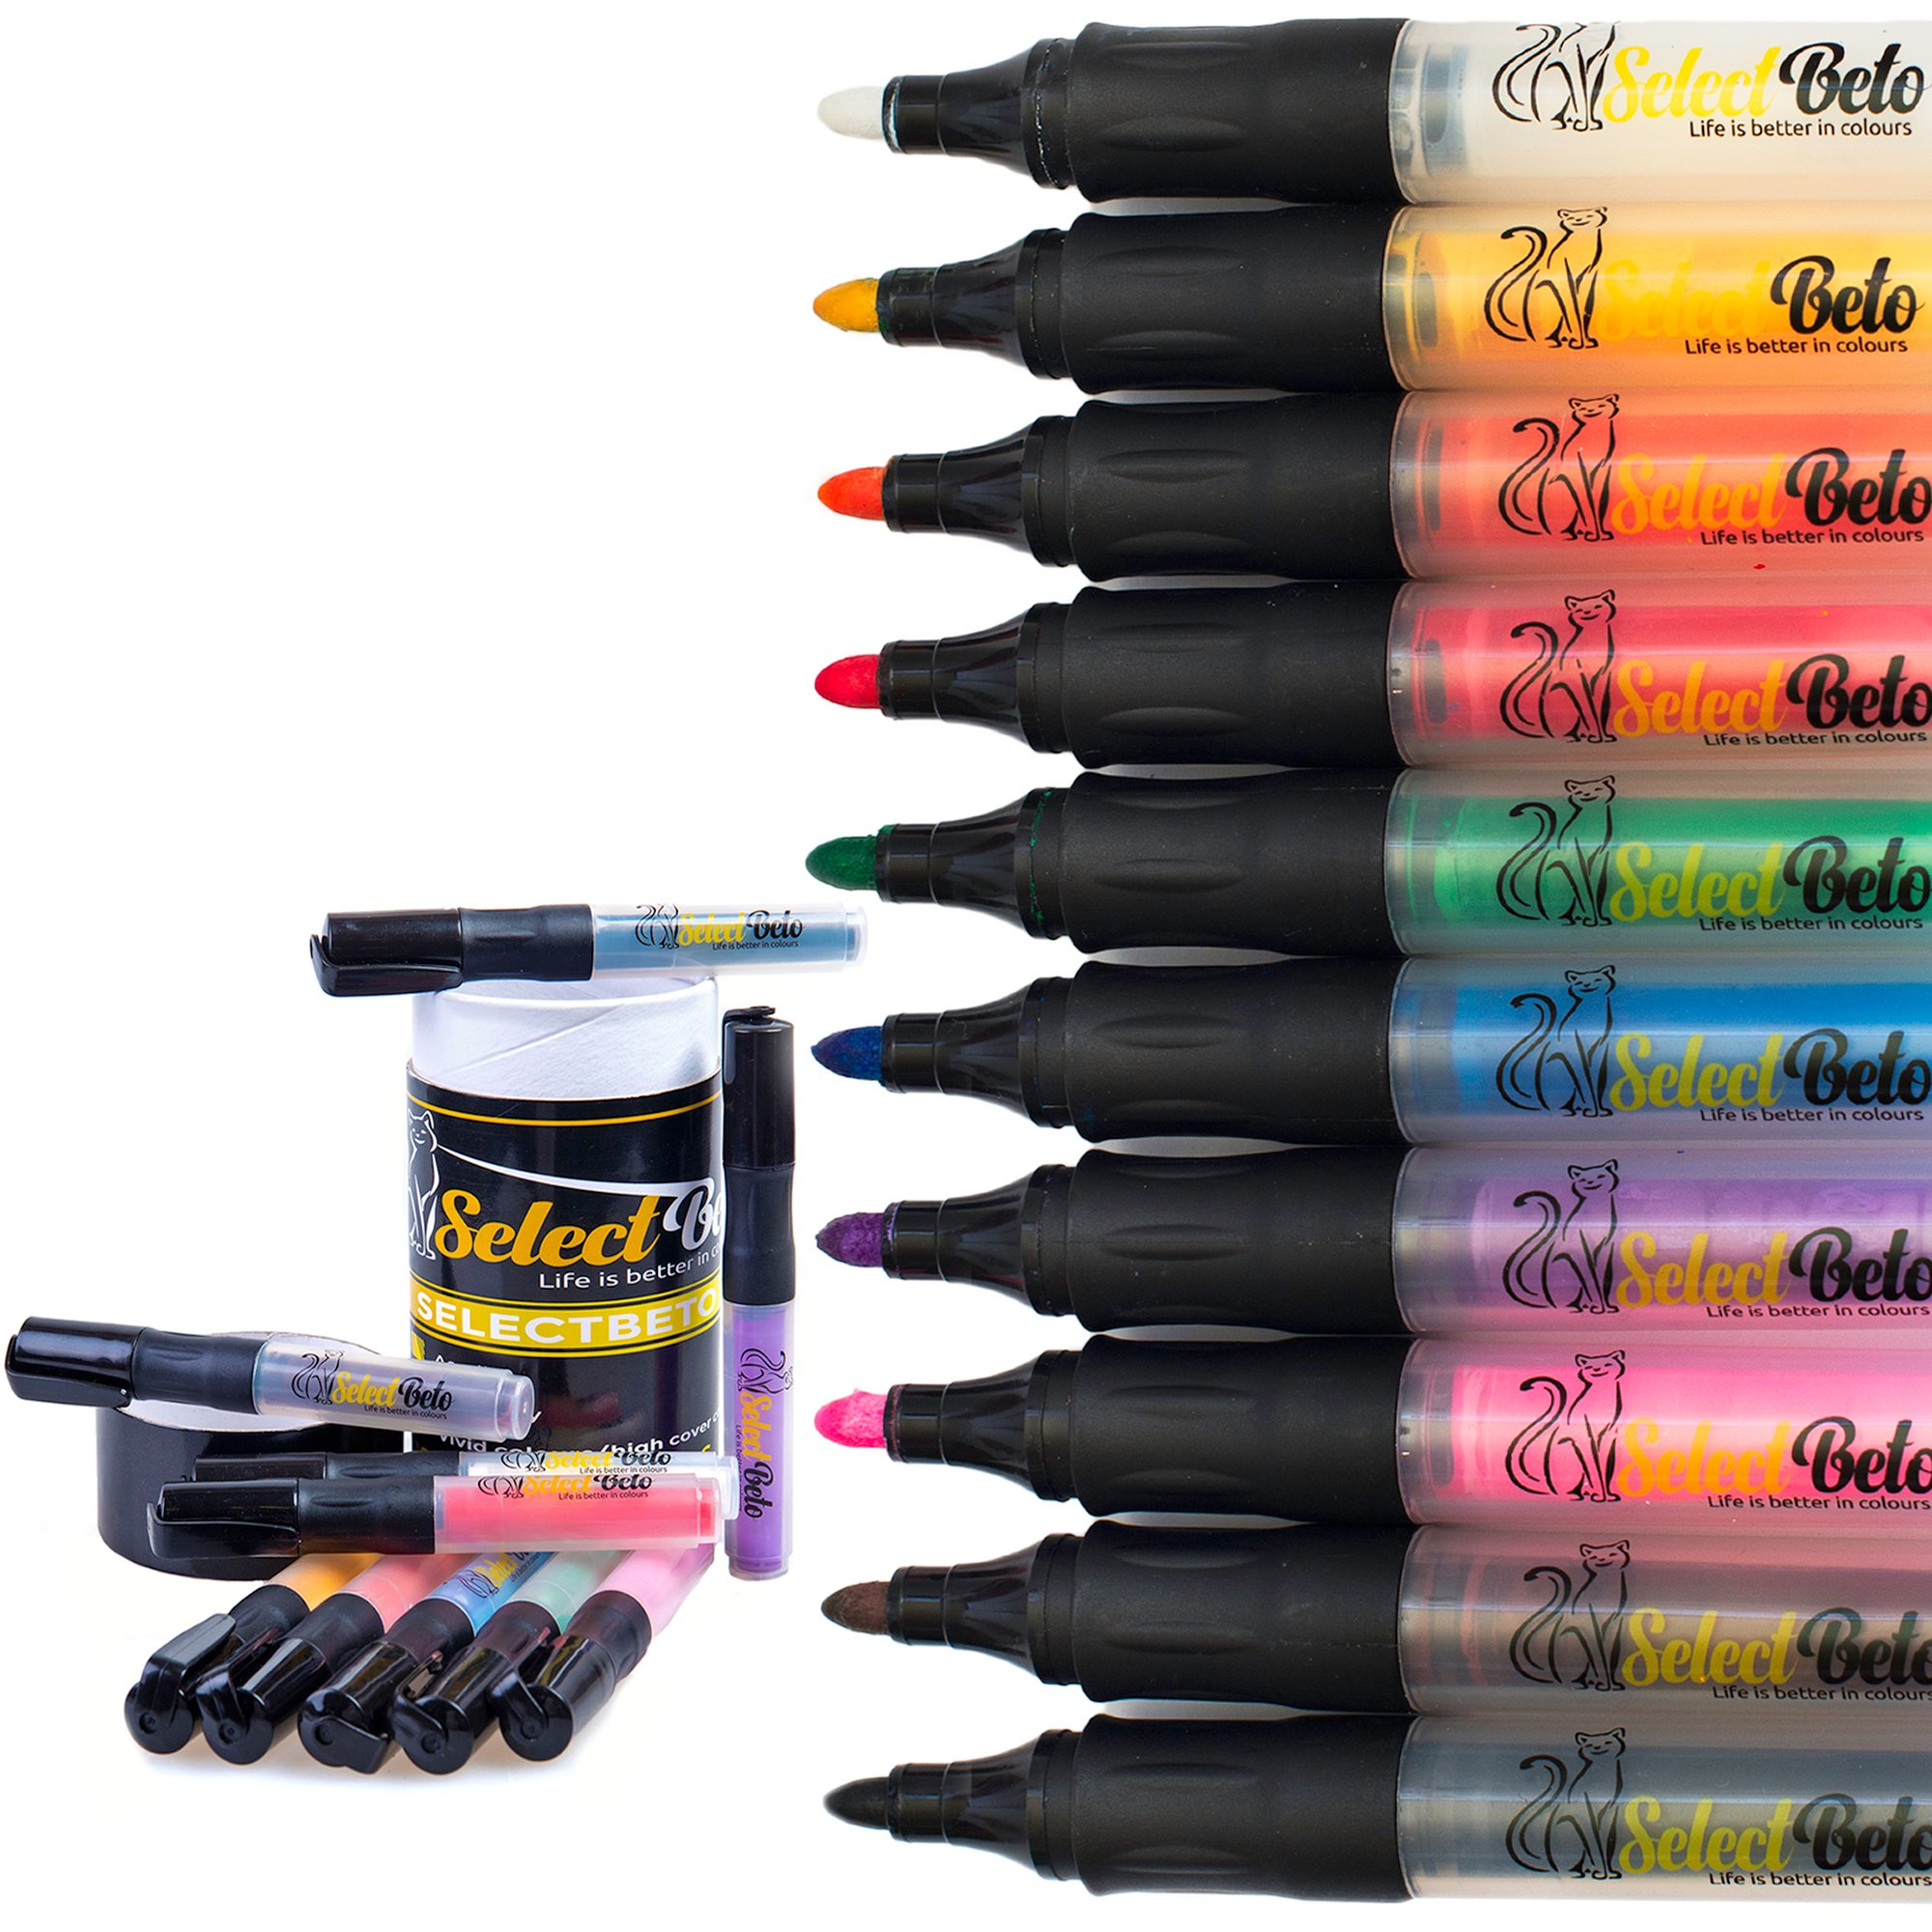 Paint Pens Markers for Rock Painting- Canvas, Glass, Wood,Ceramic, Pottery, Clay, Fabric. 10 Acrylic Paint Pen- Vibrant Medium tip in a Set by SelectBeto